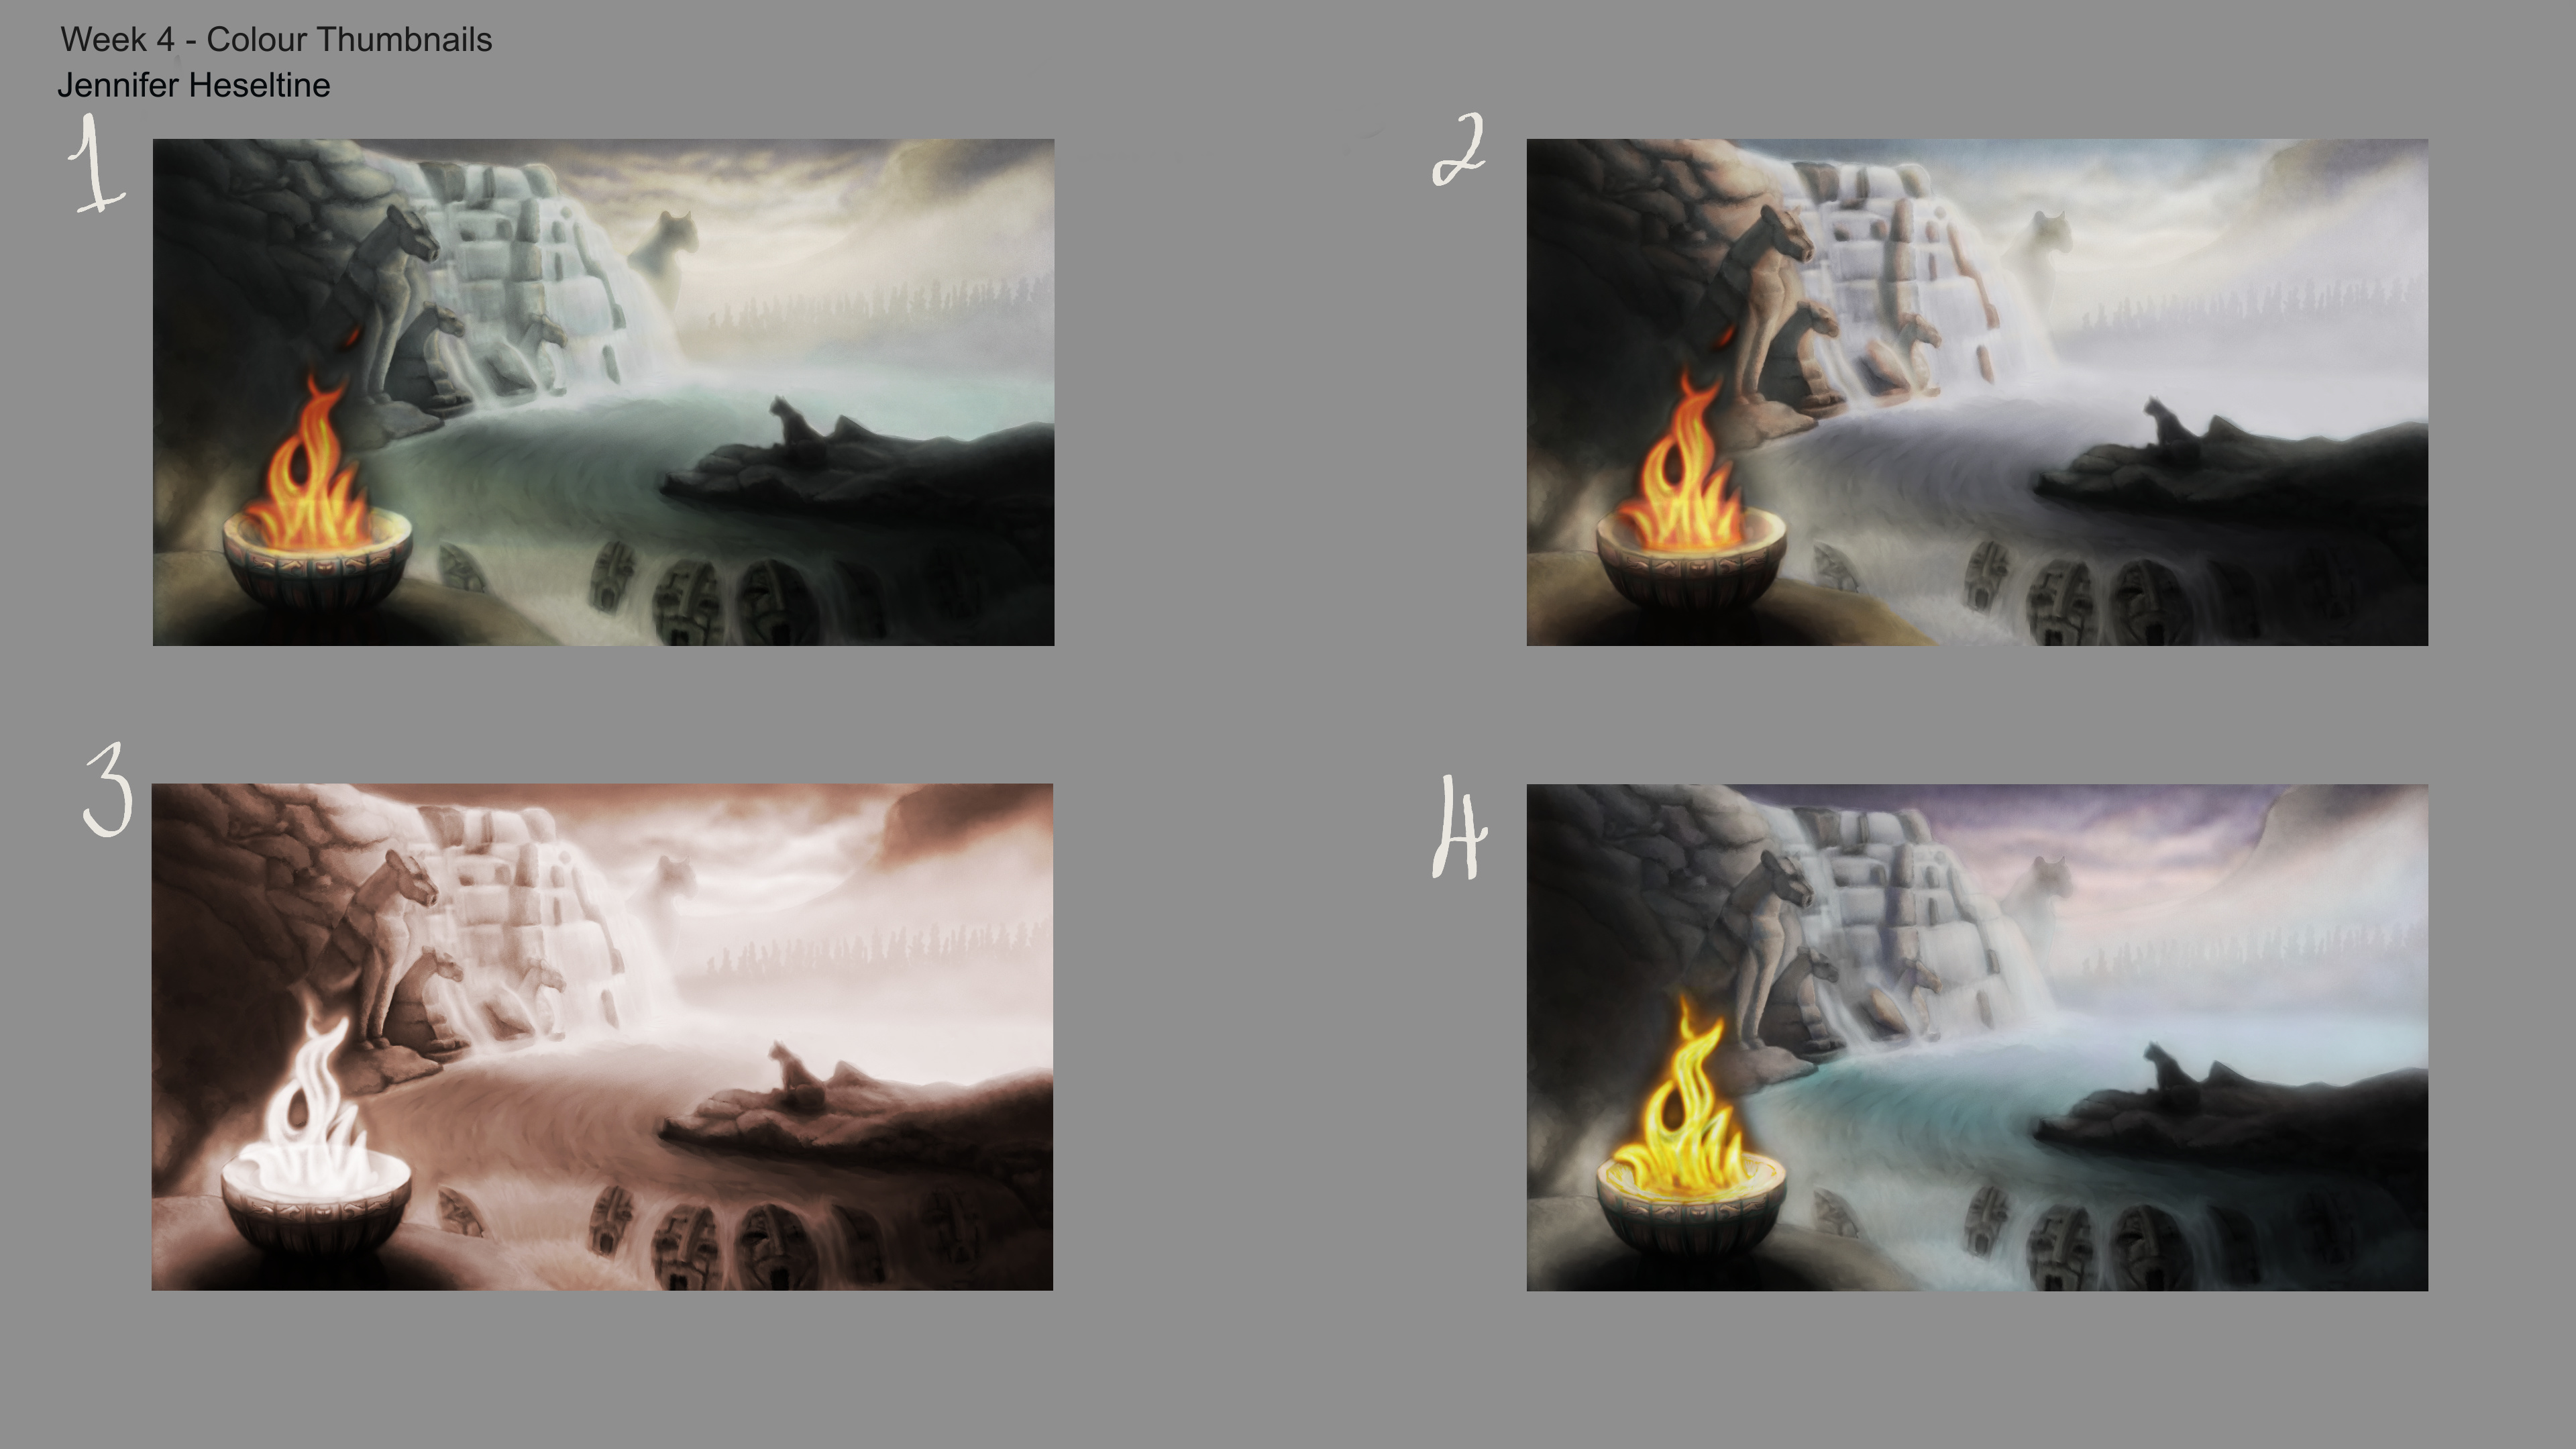 JenniferHeseltine_ColourThumbnails